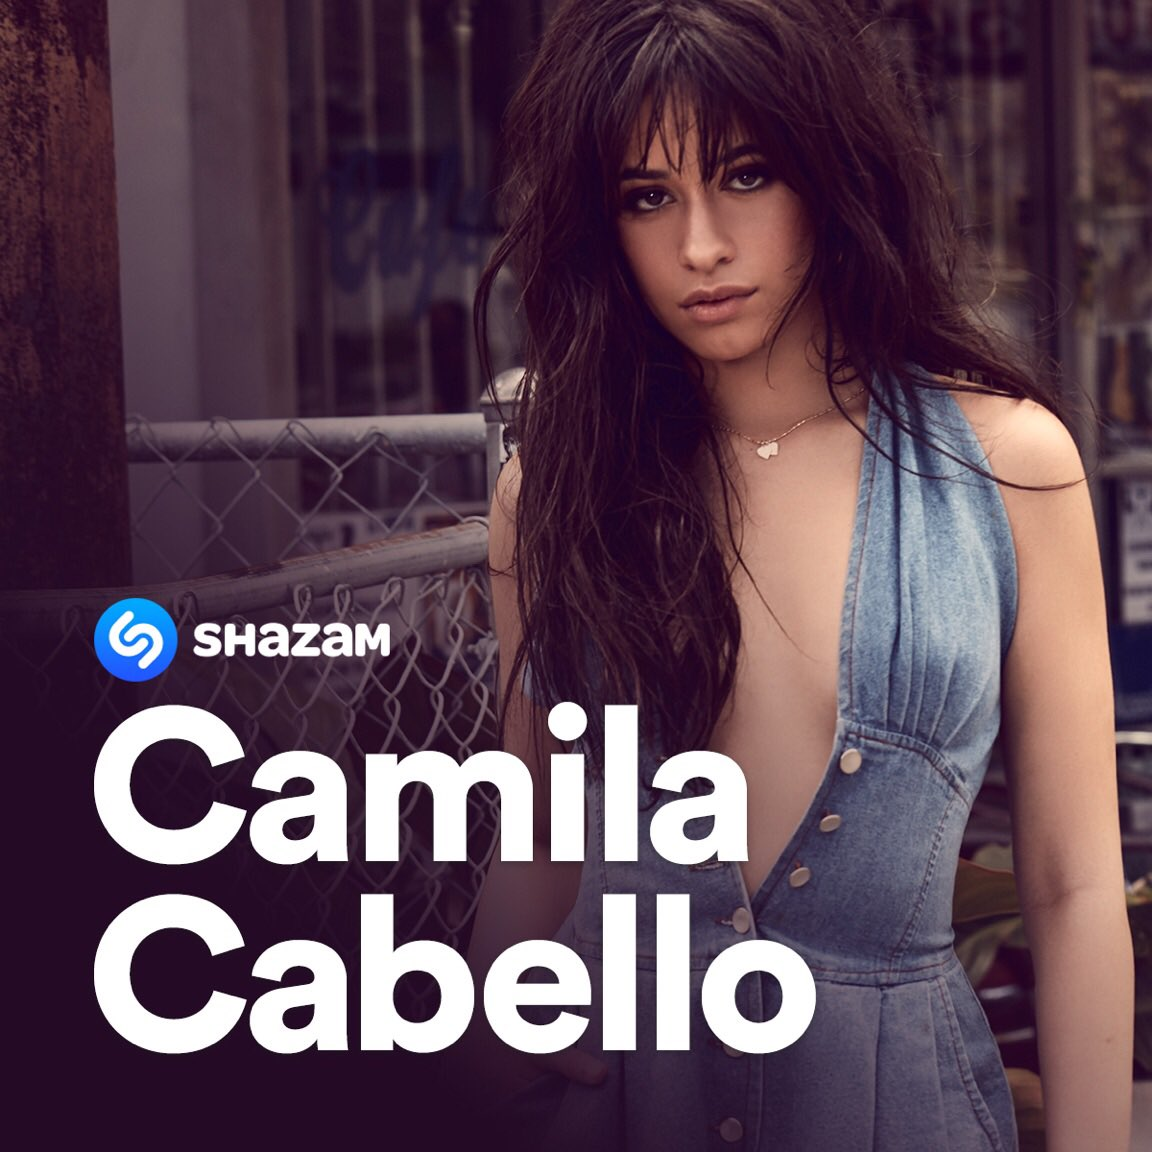 unlock an exclusive #BTS video from my latest photoshoot when you #shazam #cryingintheclub during @FallonTonight!! 💕💕 @Shazam